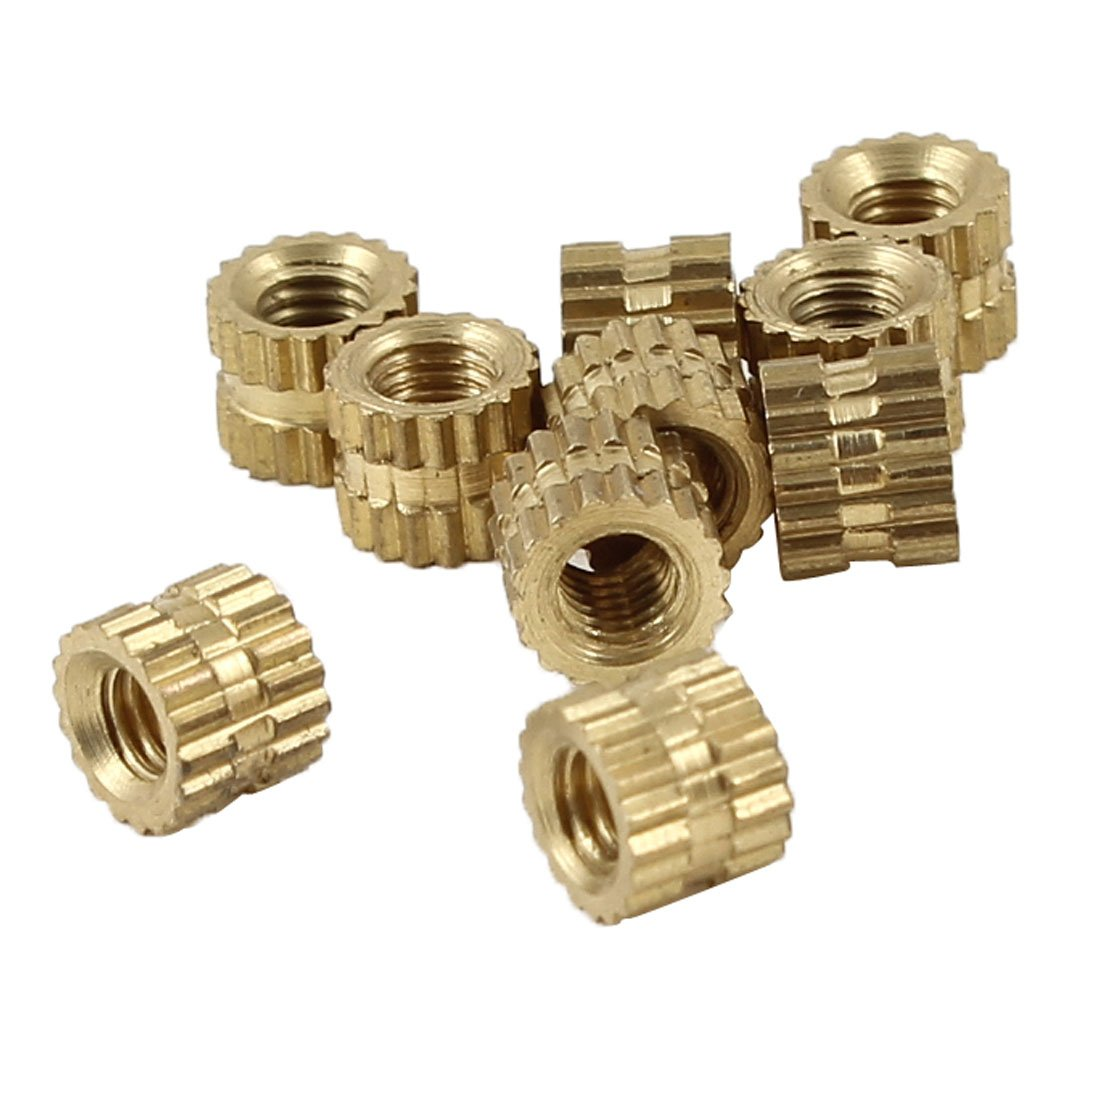 Sourcingmap a13111400ux0684 3mm Threaded High Brass Knurled Inserts (10 Pieces)